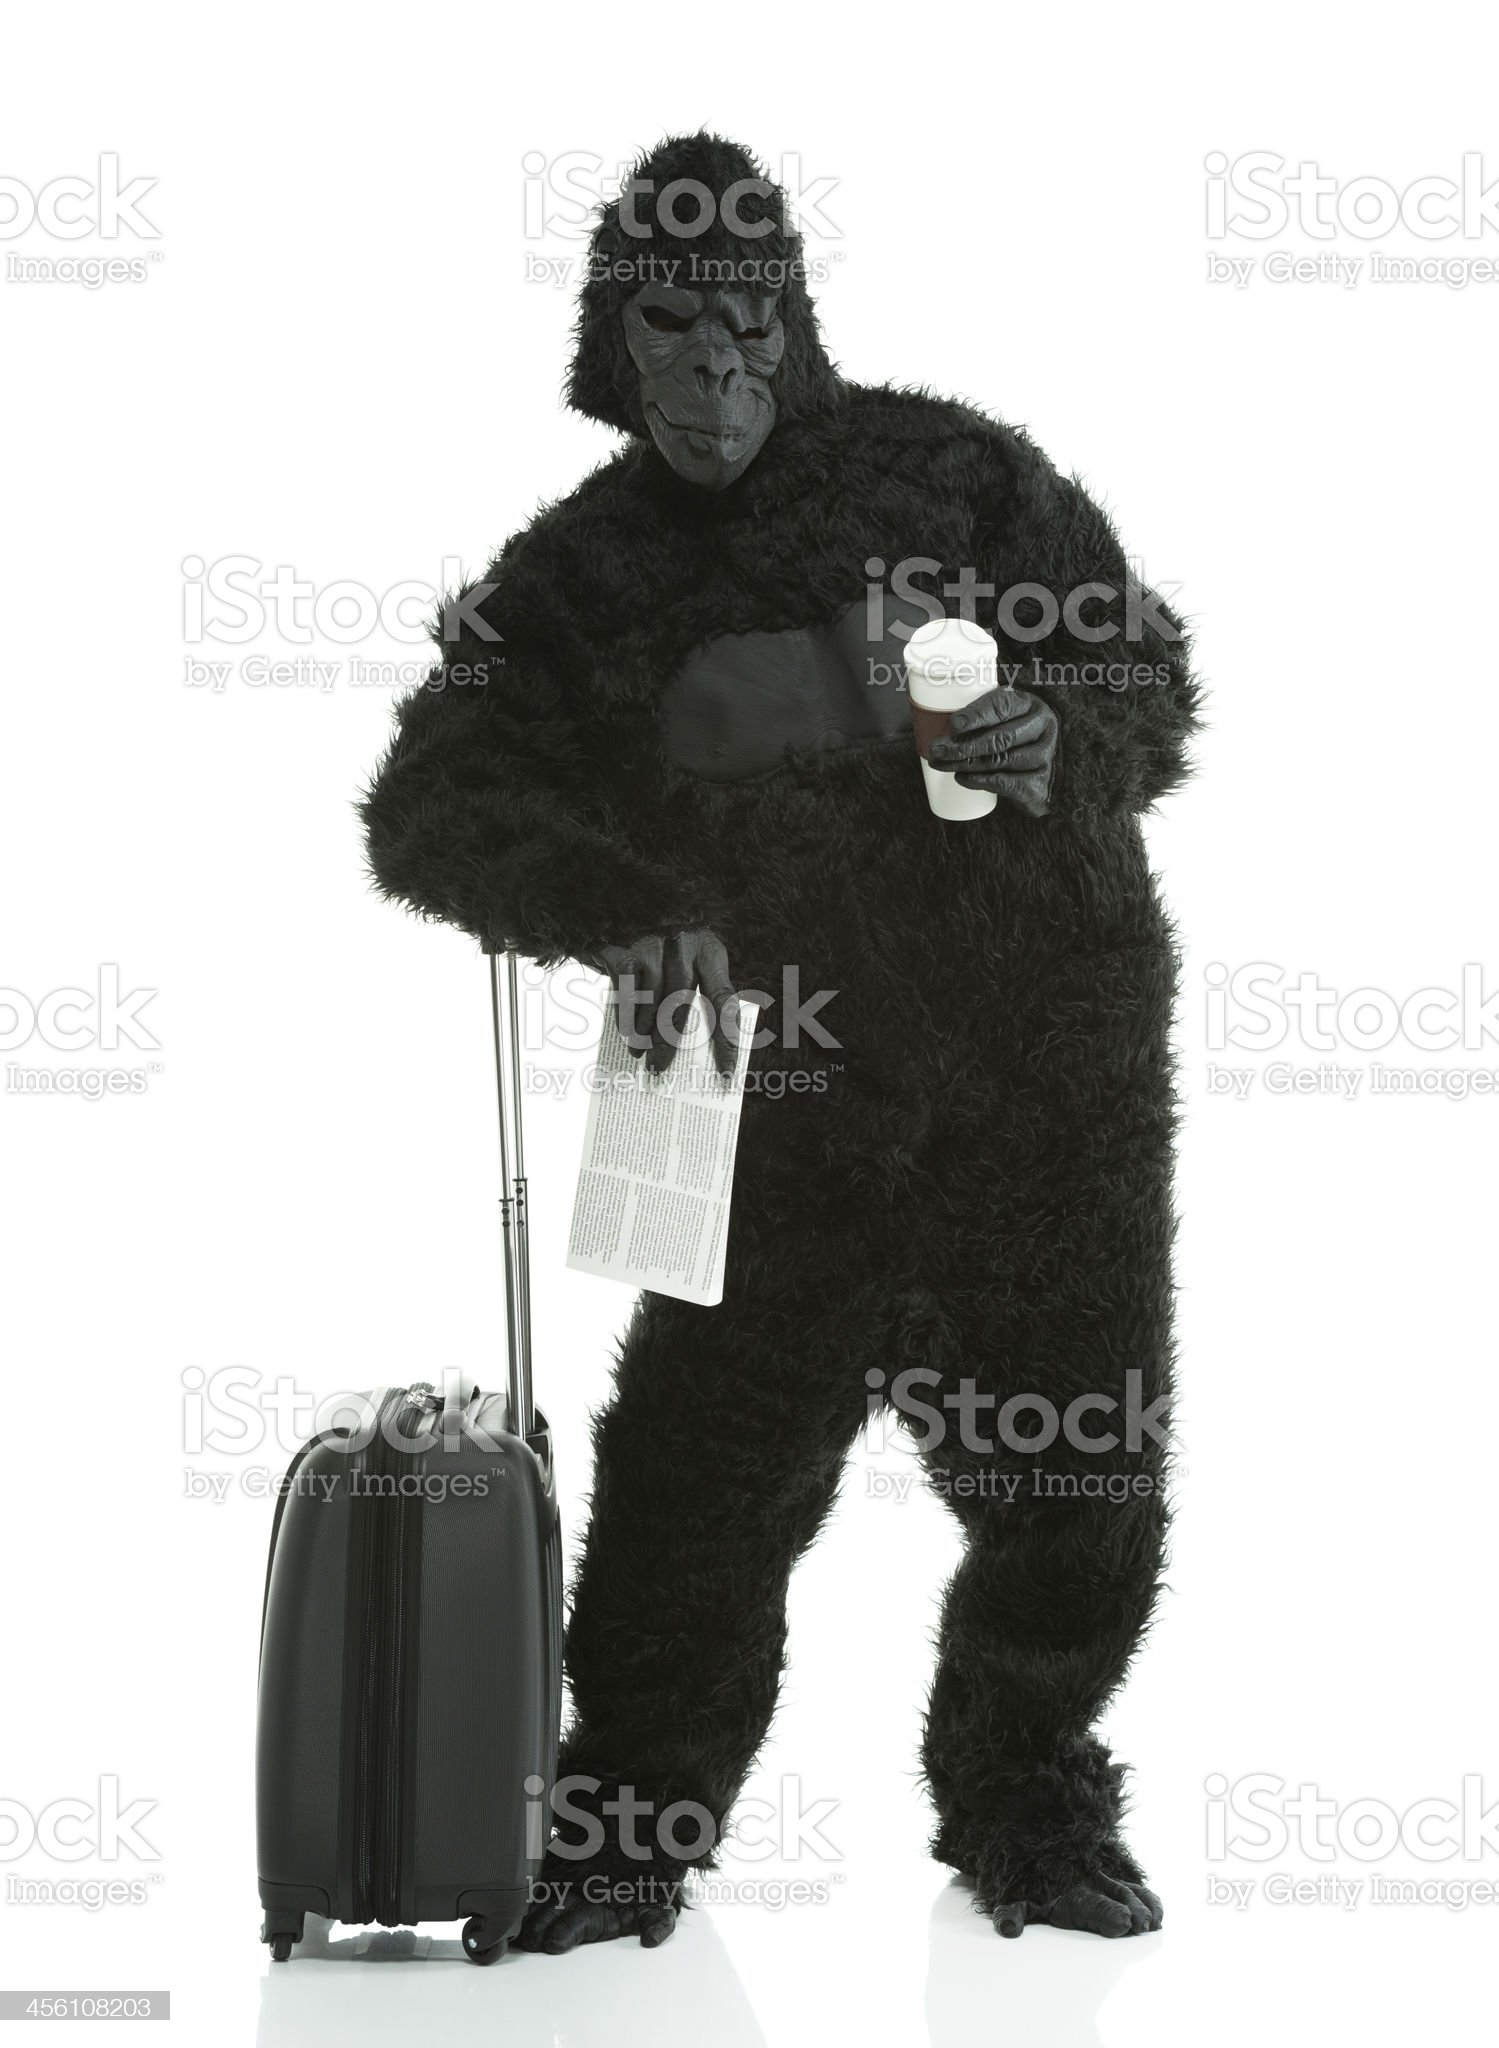 Gorilla holding disposable coffee cup royalty-free stock photo